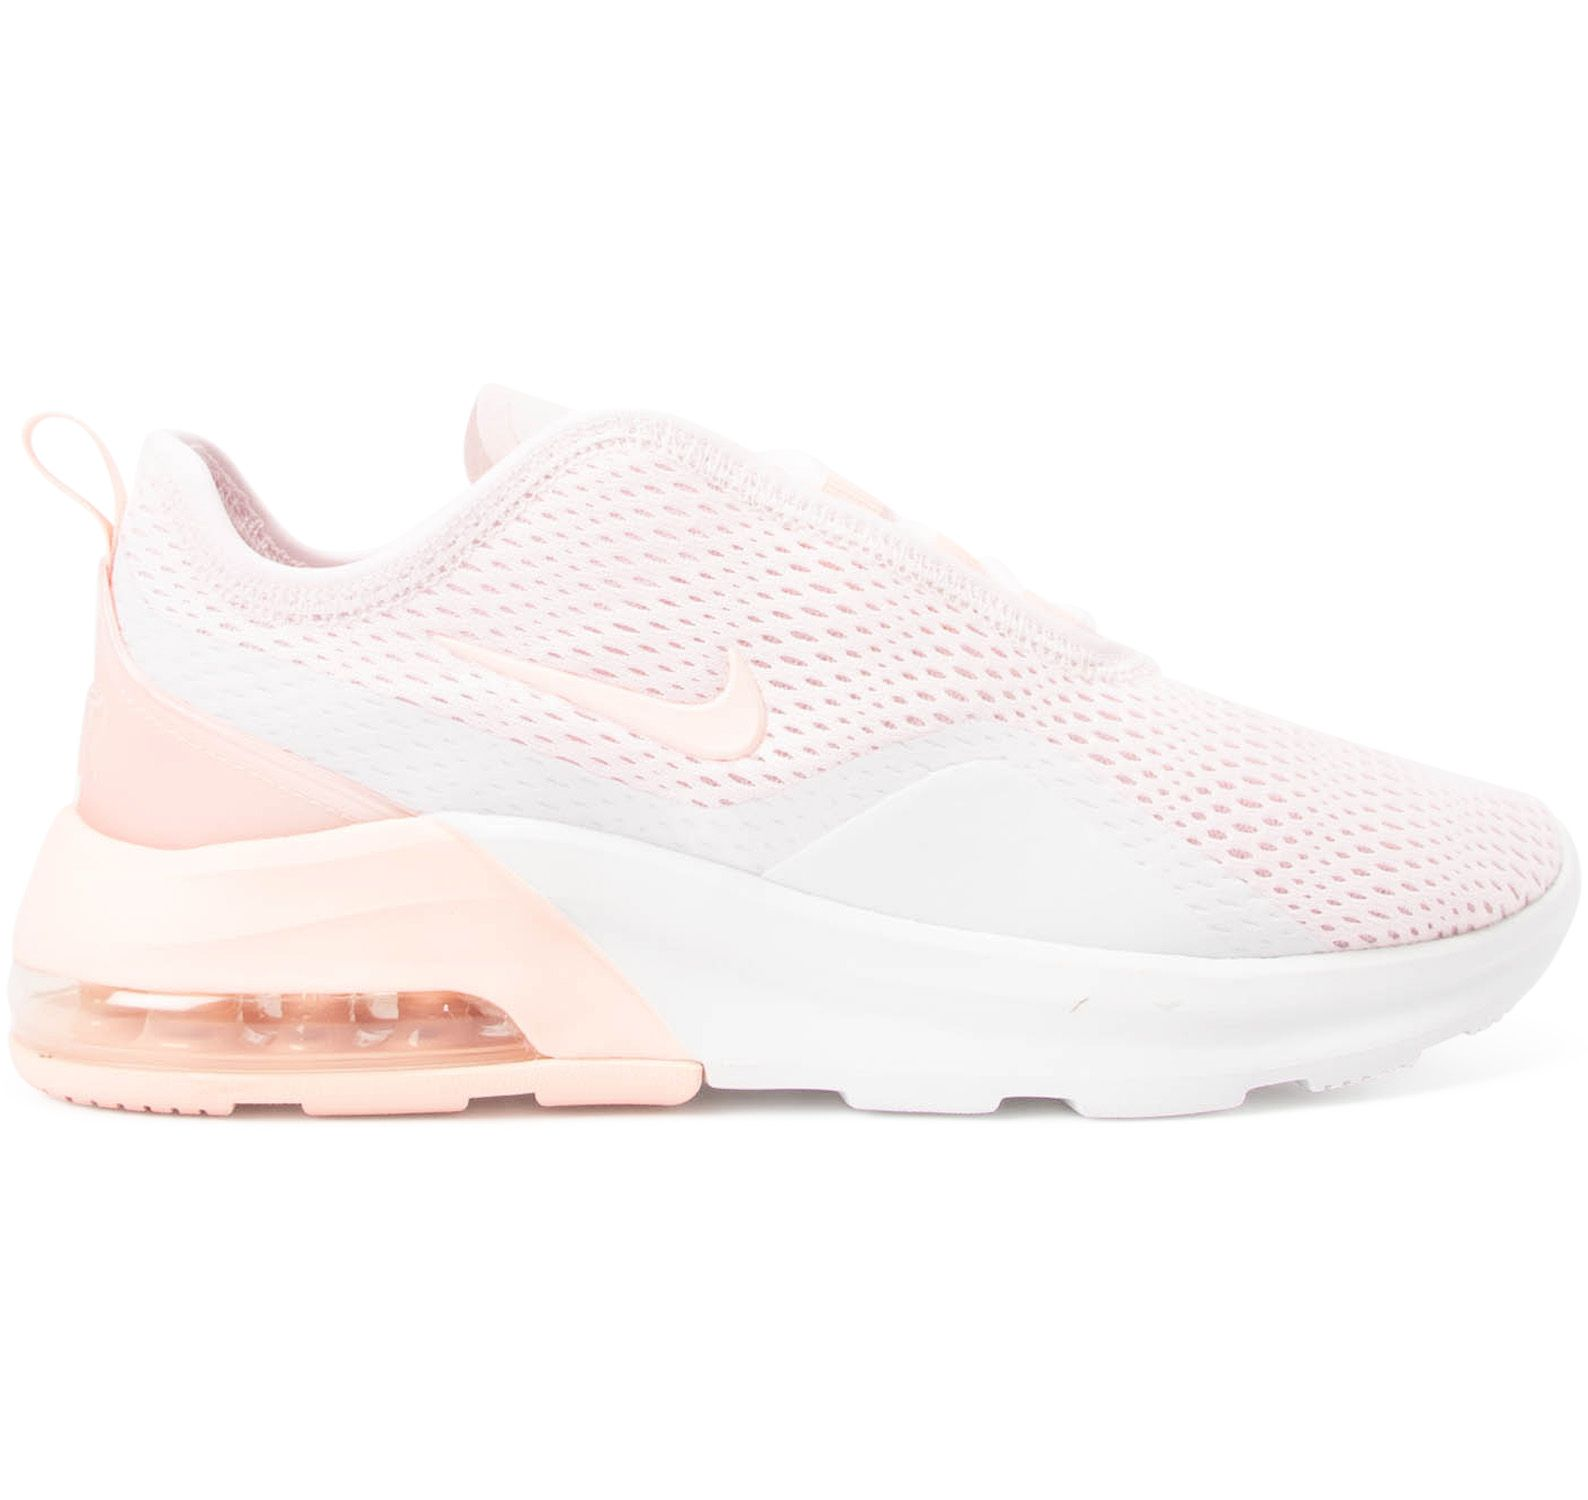 nike air max motion 2 women's, pale pinkwashed coral pale